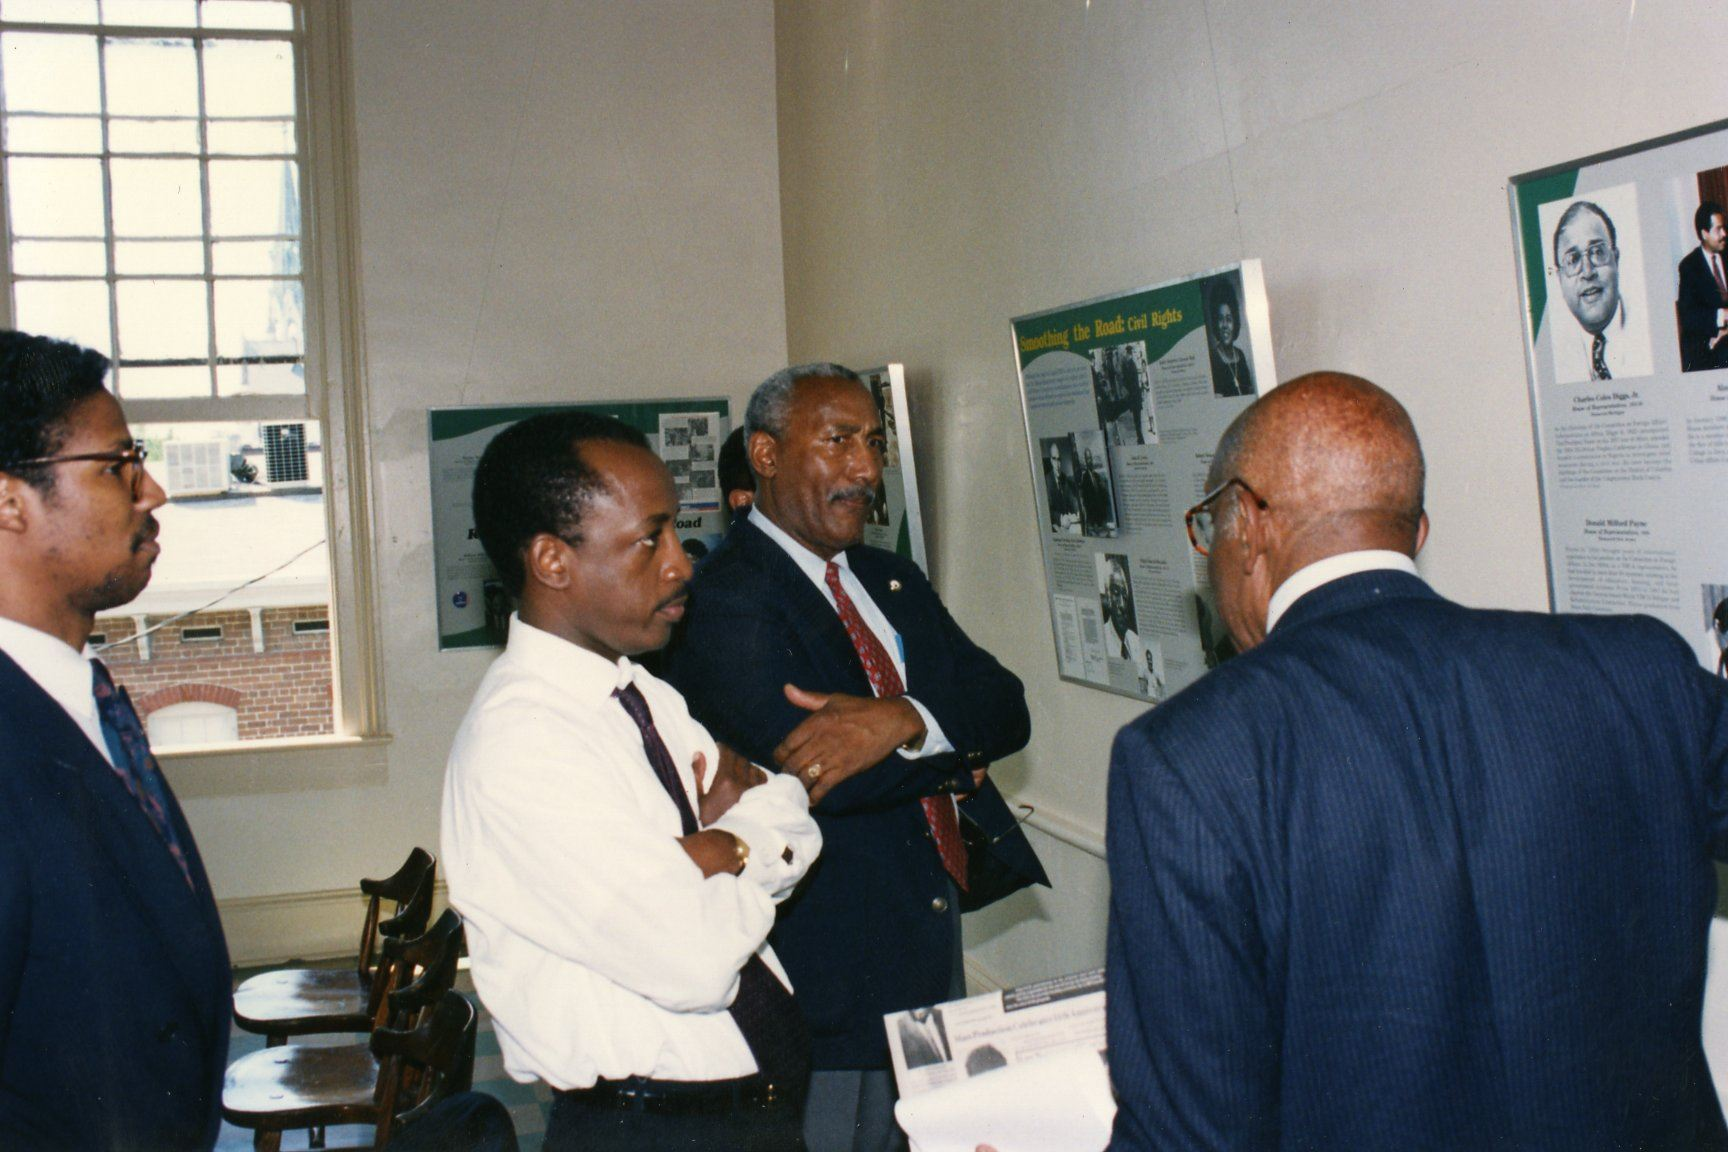 W.W. Law speaking at an exhibition